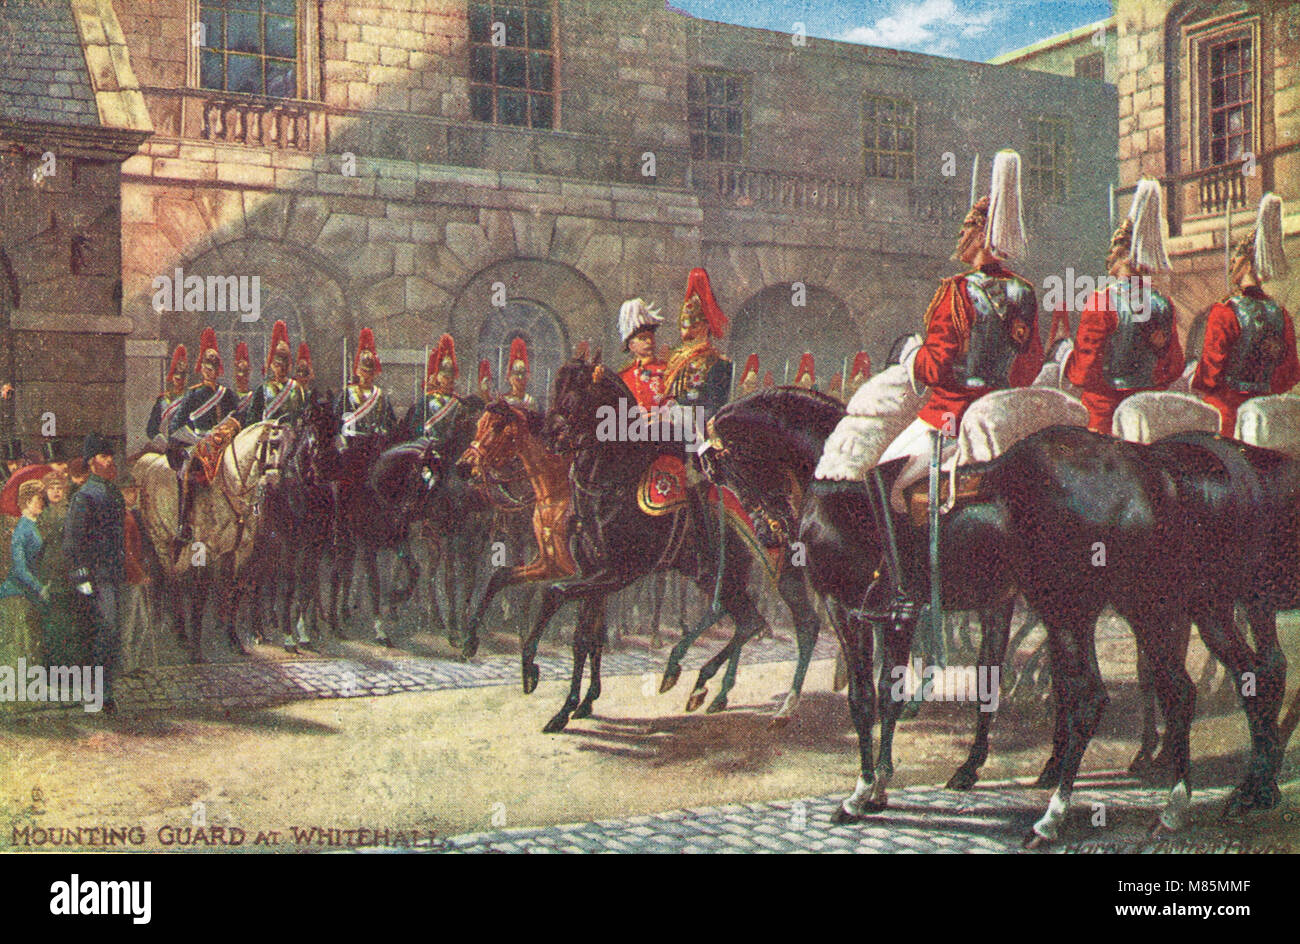 Mounting guard (changing the guard) at Whitehall, London, England, circa 1905 - Stock Image